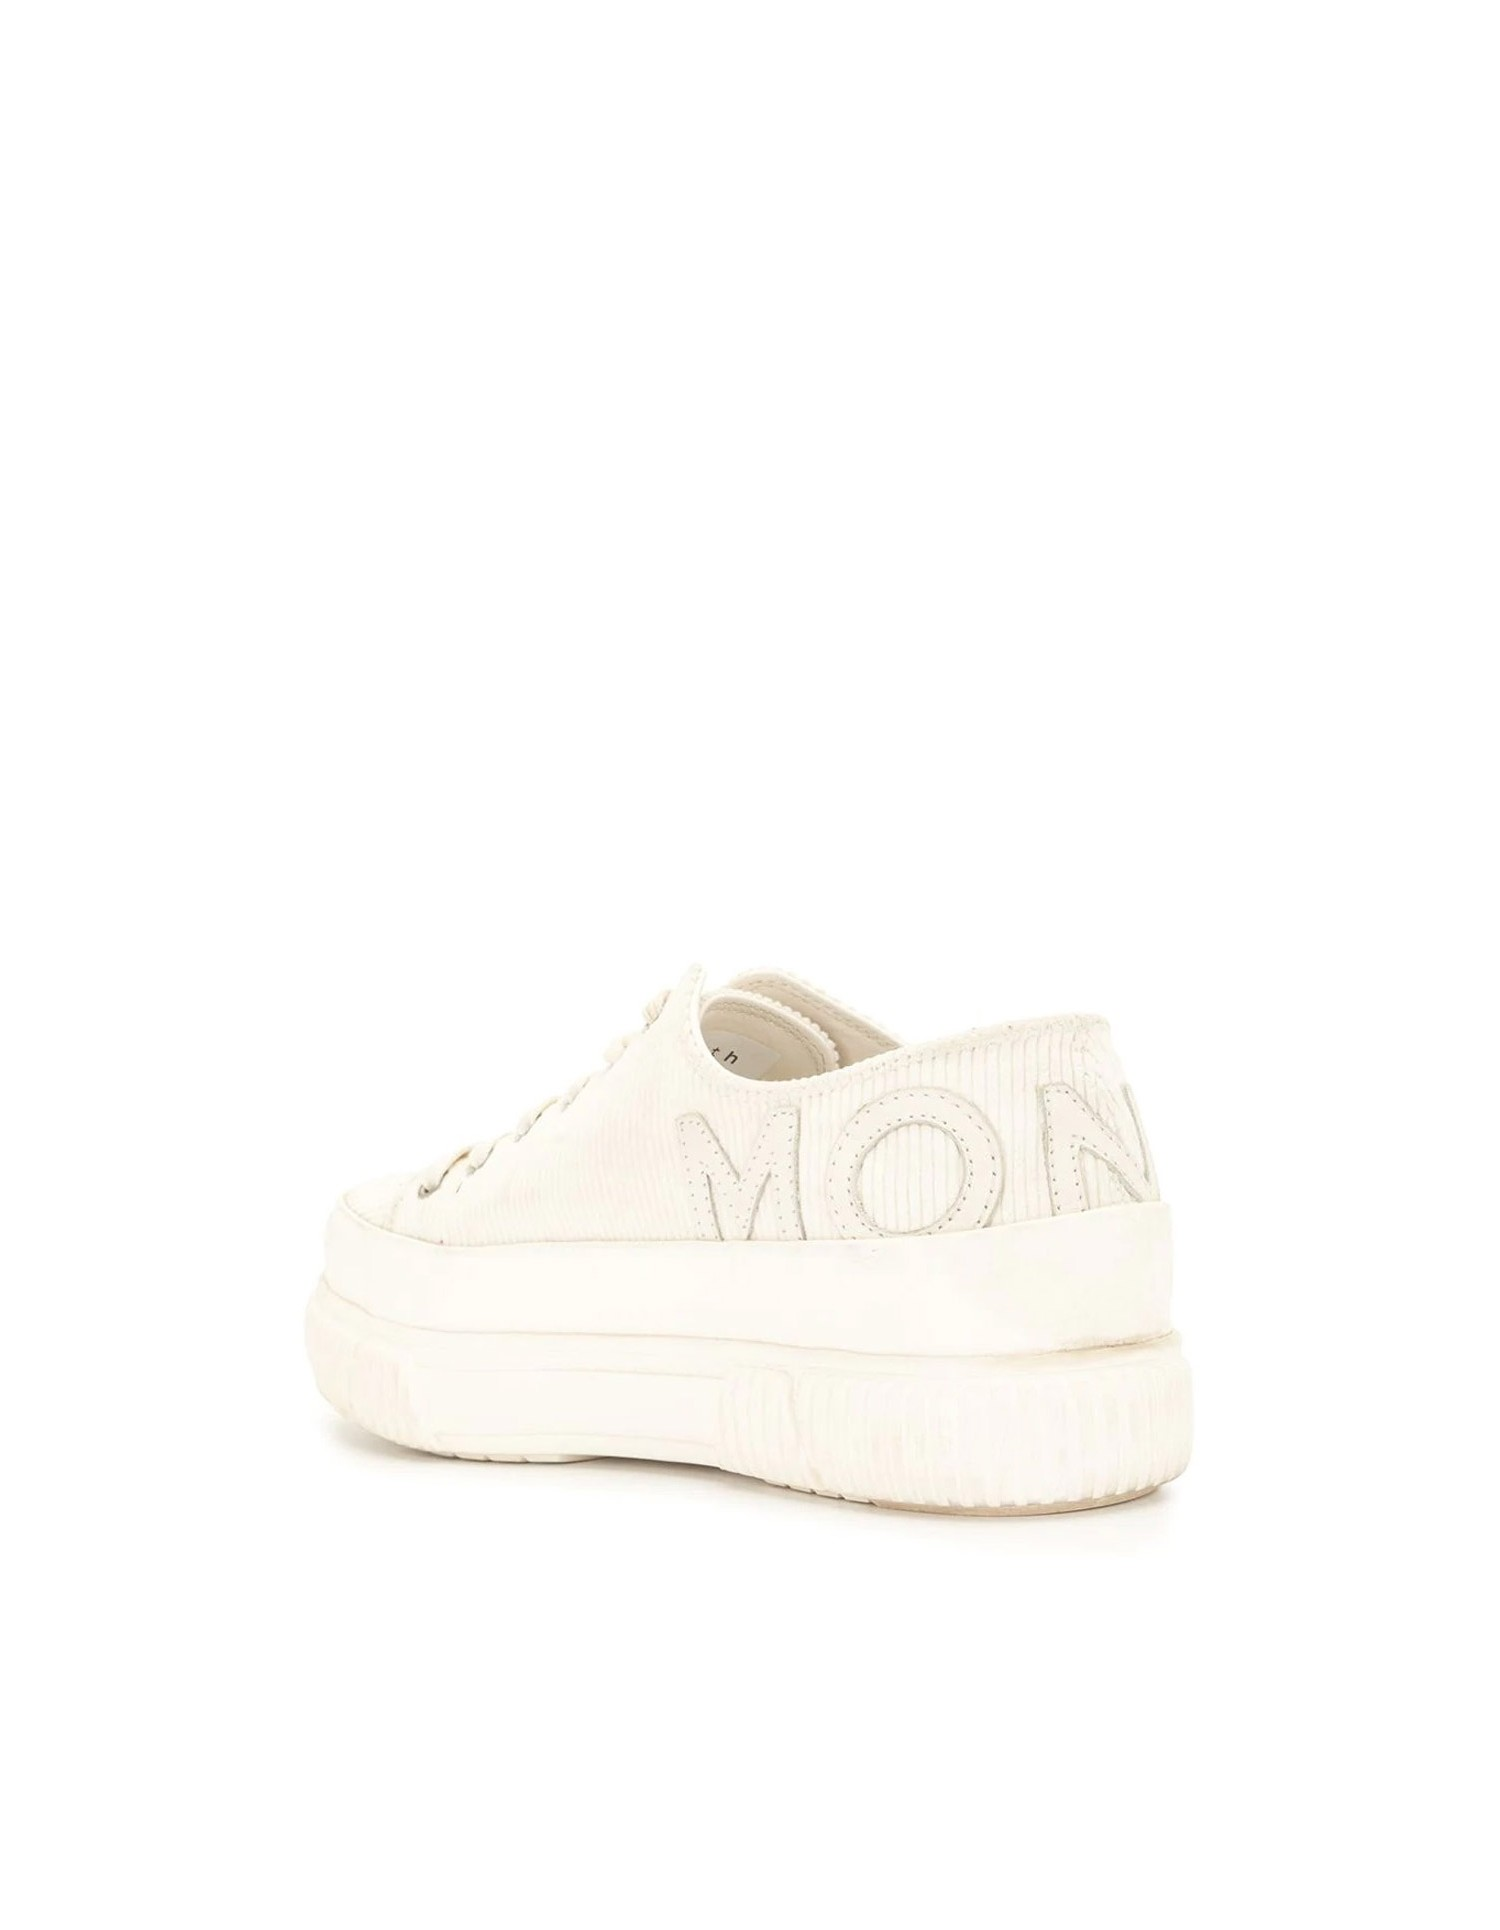 Both X MONSE Classic Platform Shoe in Ivory Angled Back View